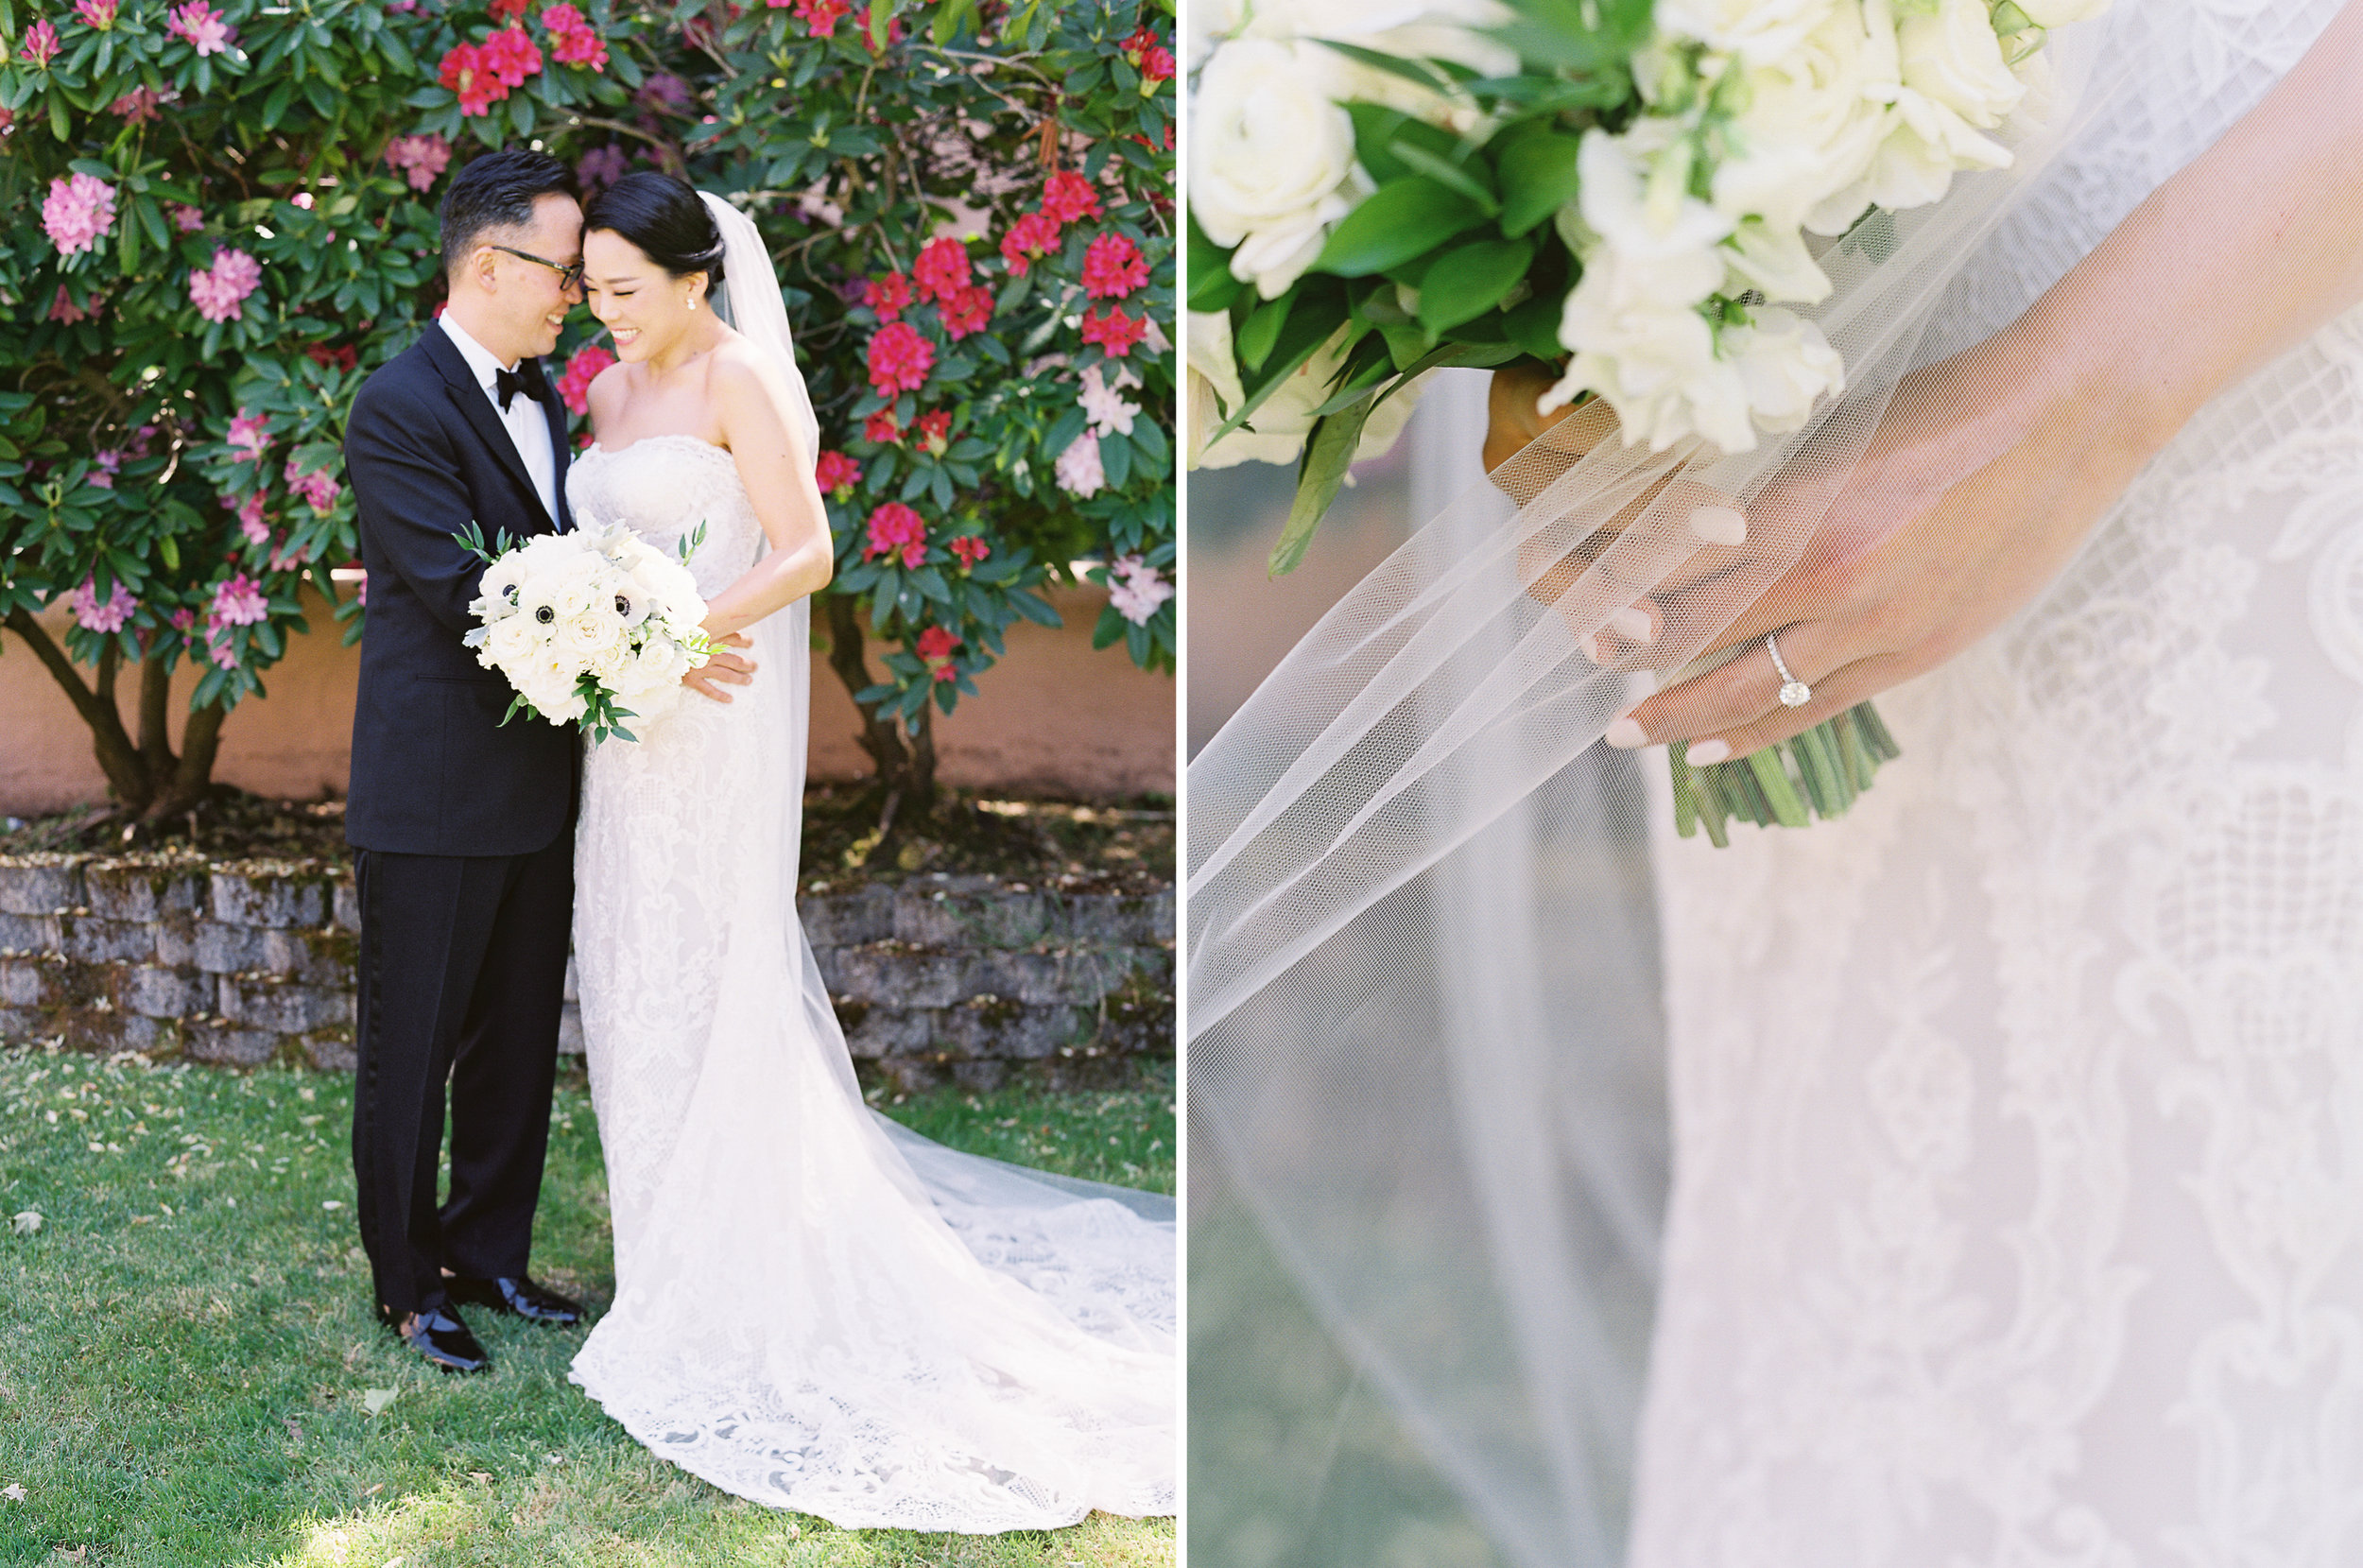 Meghan Mehan Photography - Sonoma Golf Club Wedding - California Film Wedding Photographer - 019.jpg